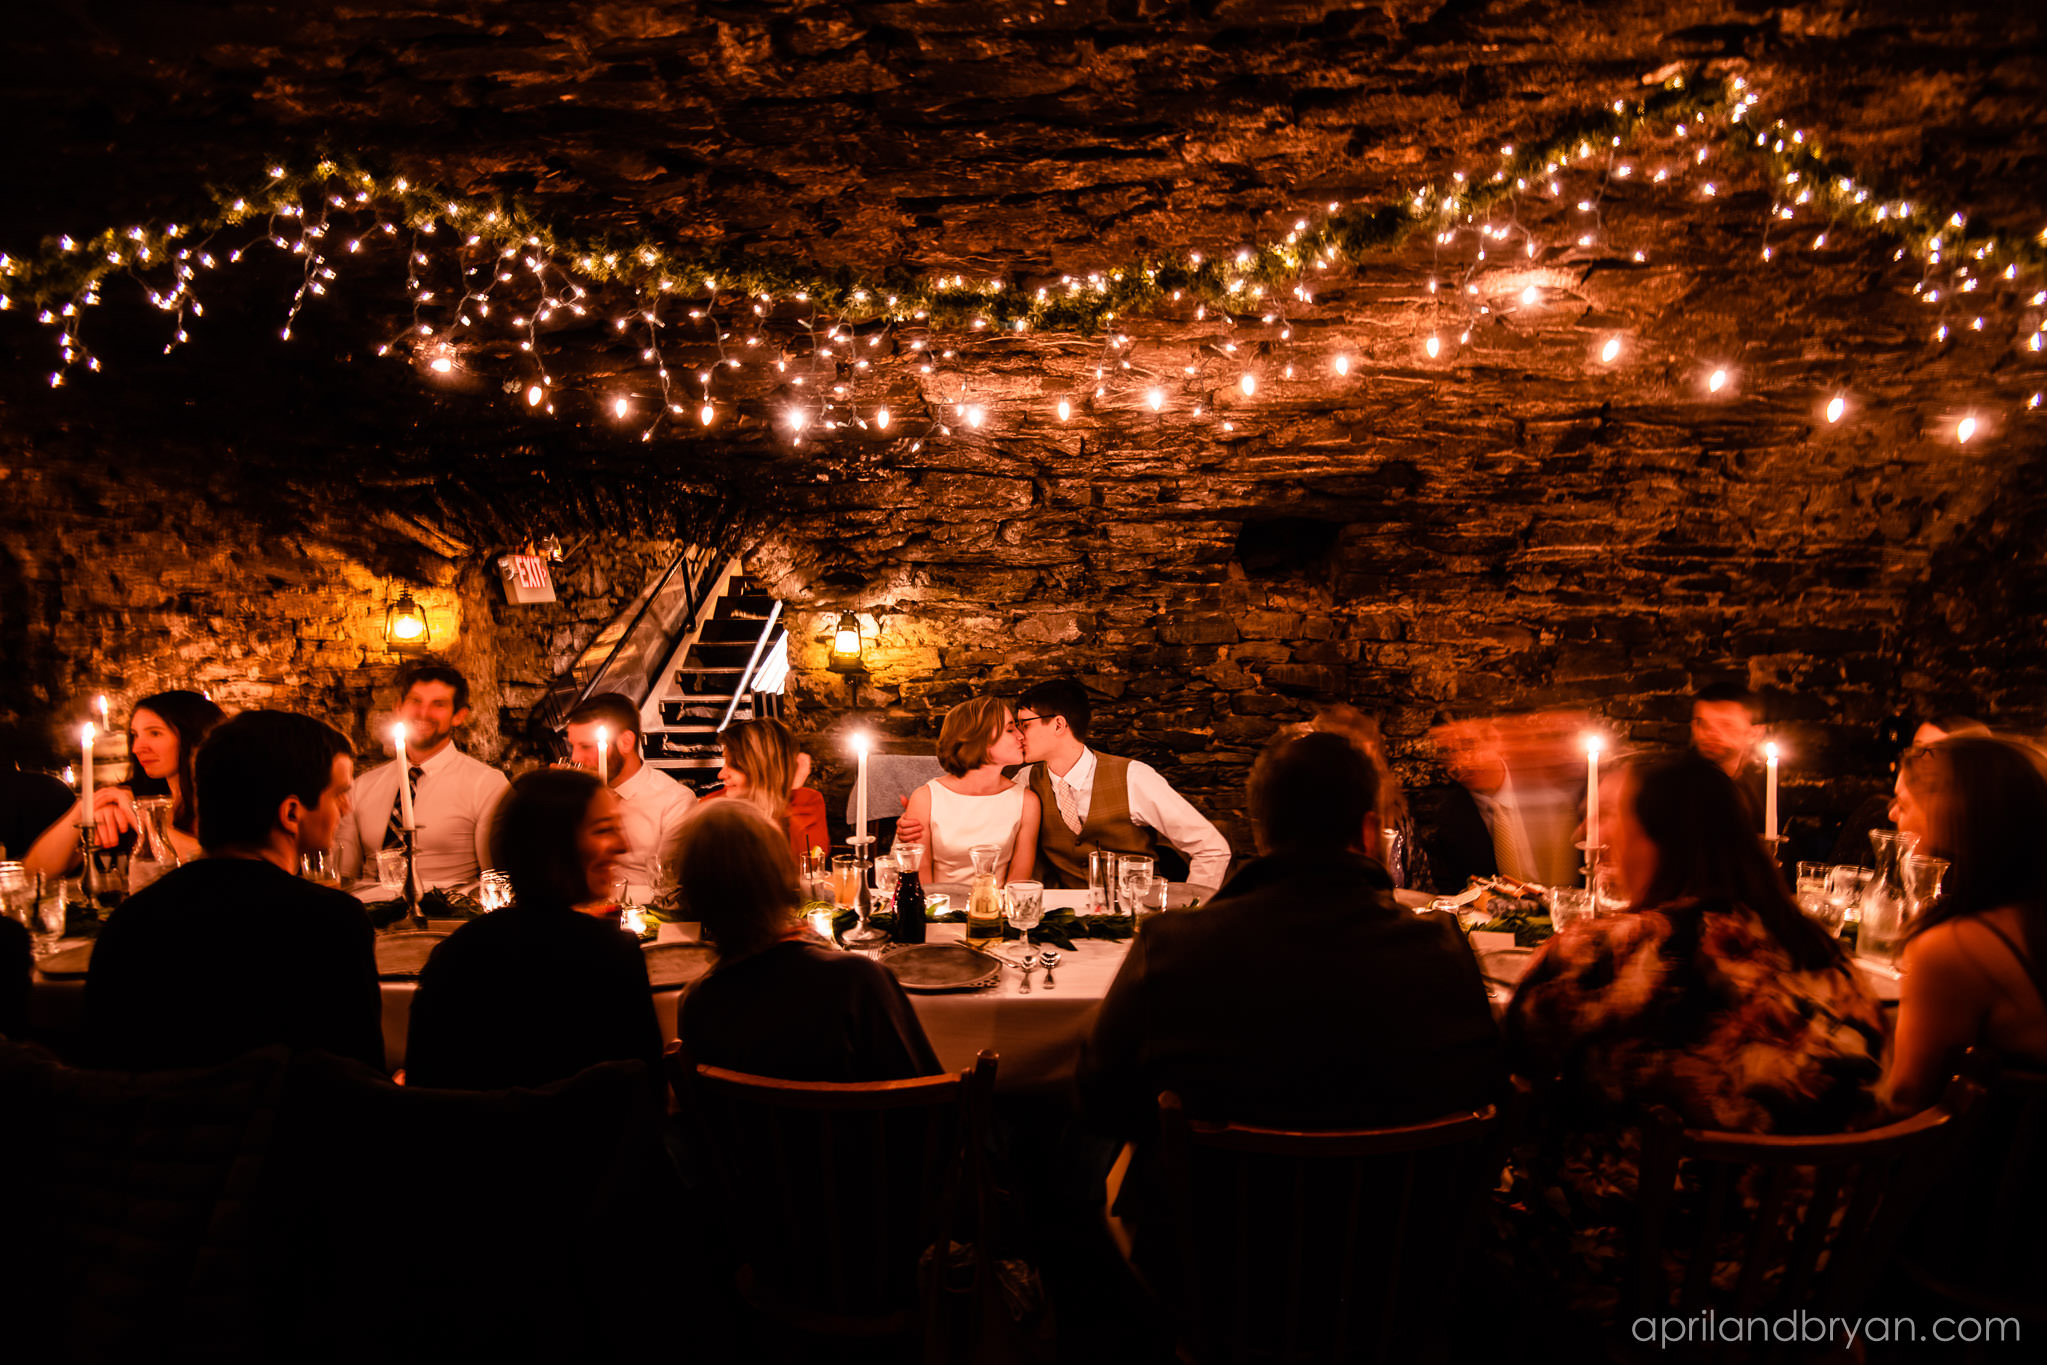 the newly wedded couple share a kiss at their reception location under string lights and a candle lit meal. Hannah and Ethan Farrell had their classic romantic styled wedding held at their home in Mount Joy, followed by a reception at the catacombs underneath Bube's Brewery. Photographed by April & Bryan Photography, the couple had the opportunity to showcase their early 1900s style and accommodate a small guest list. Featured on Dream Weddings.